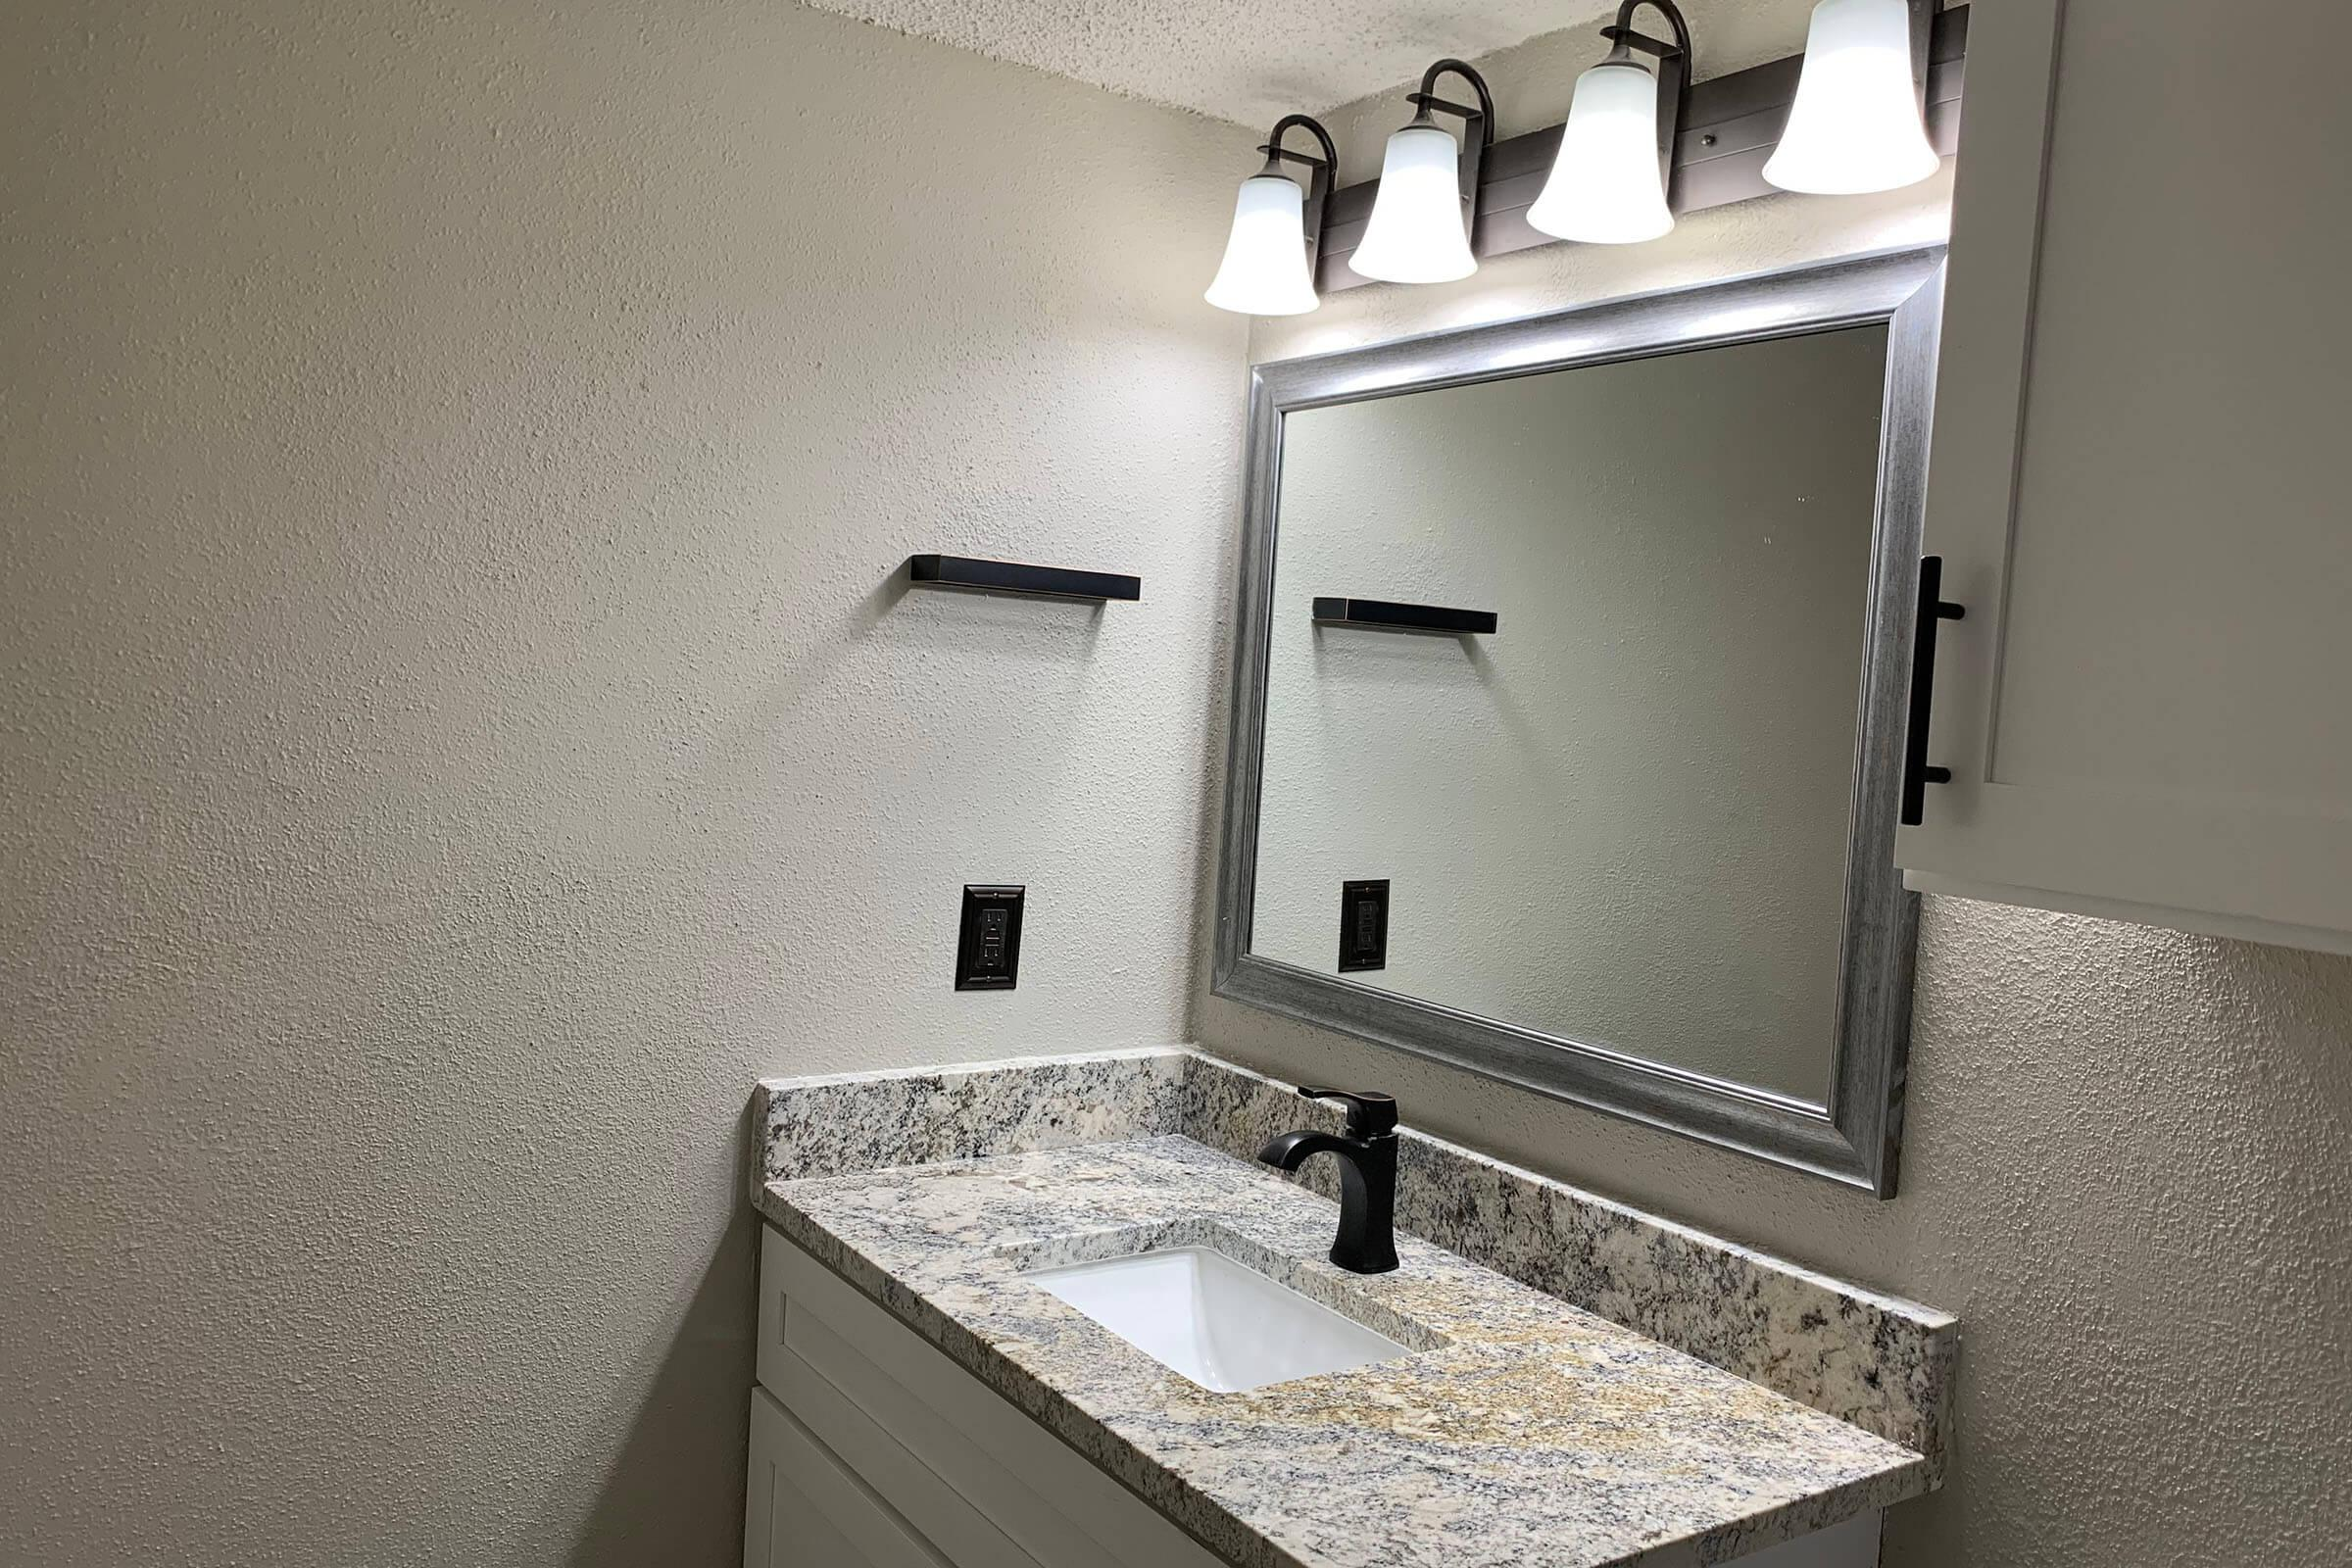 a sink and a mirror